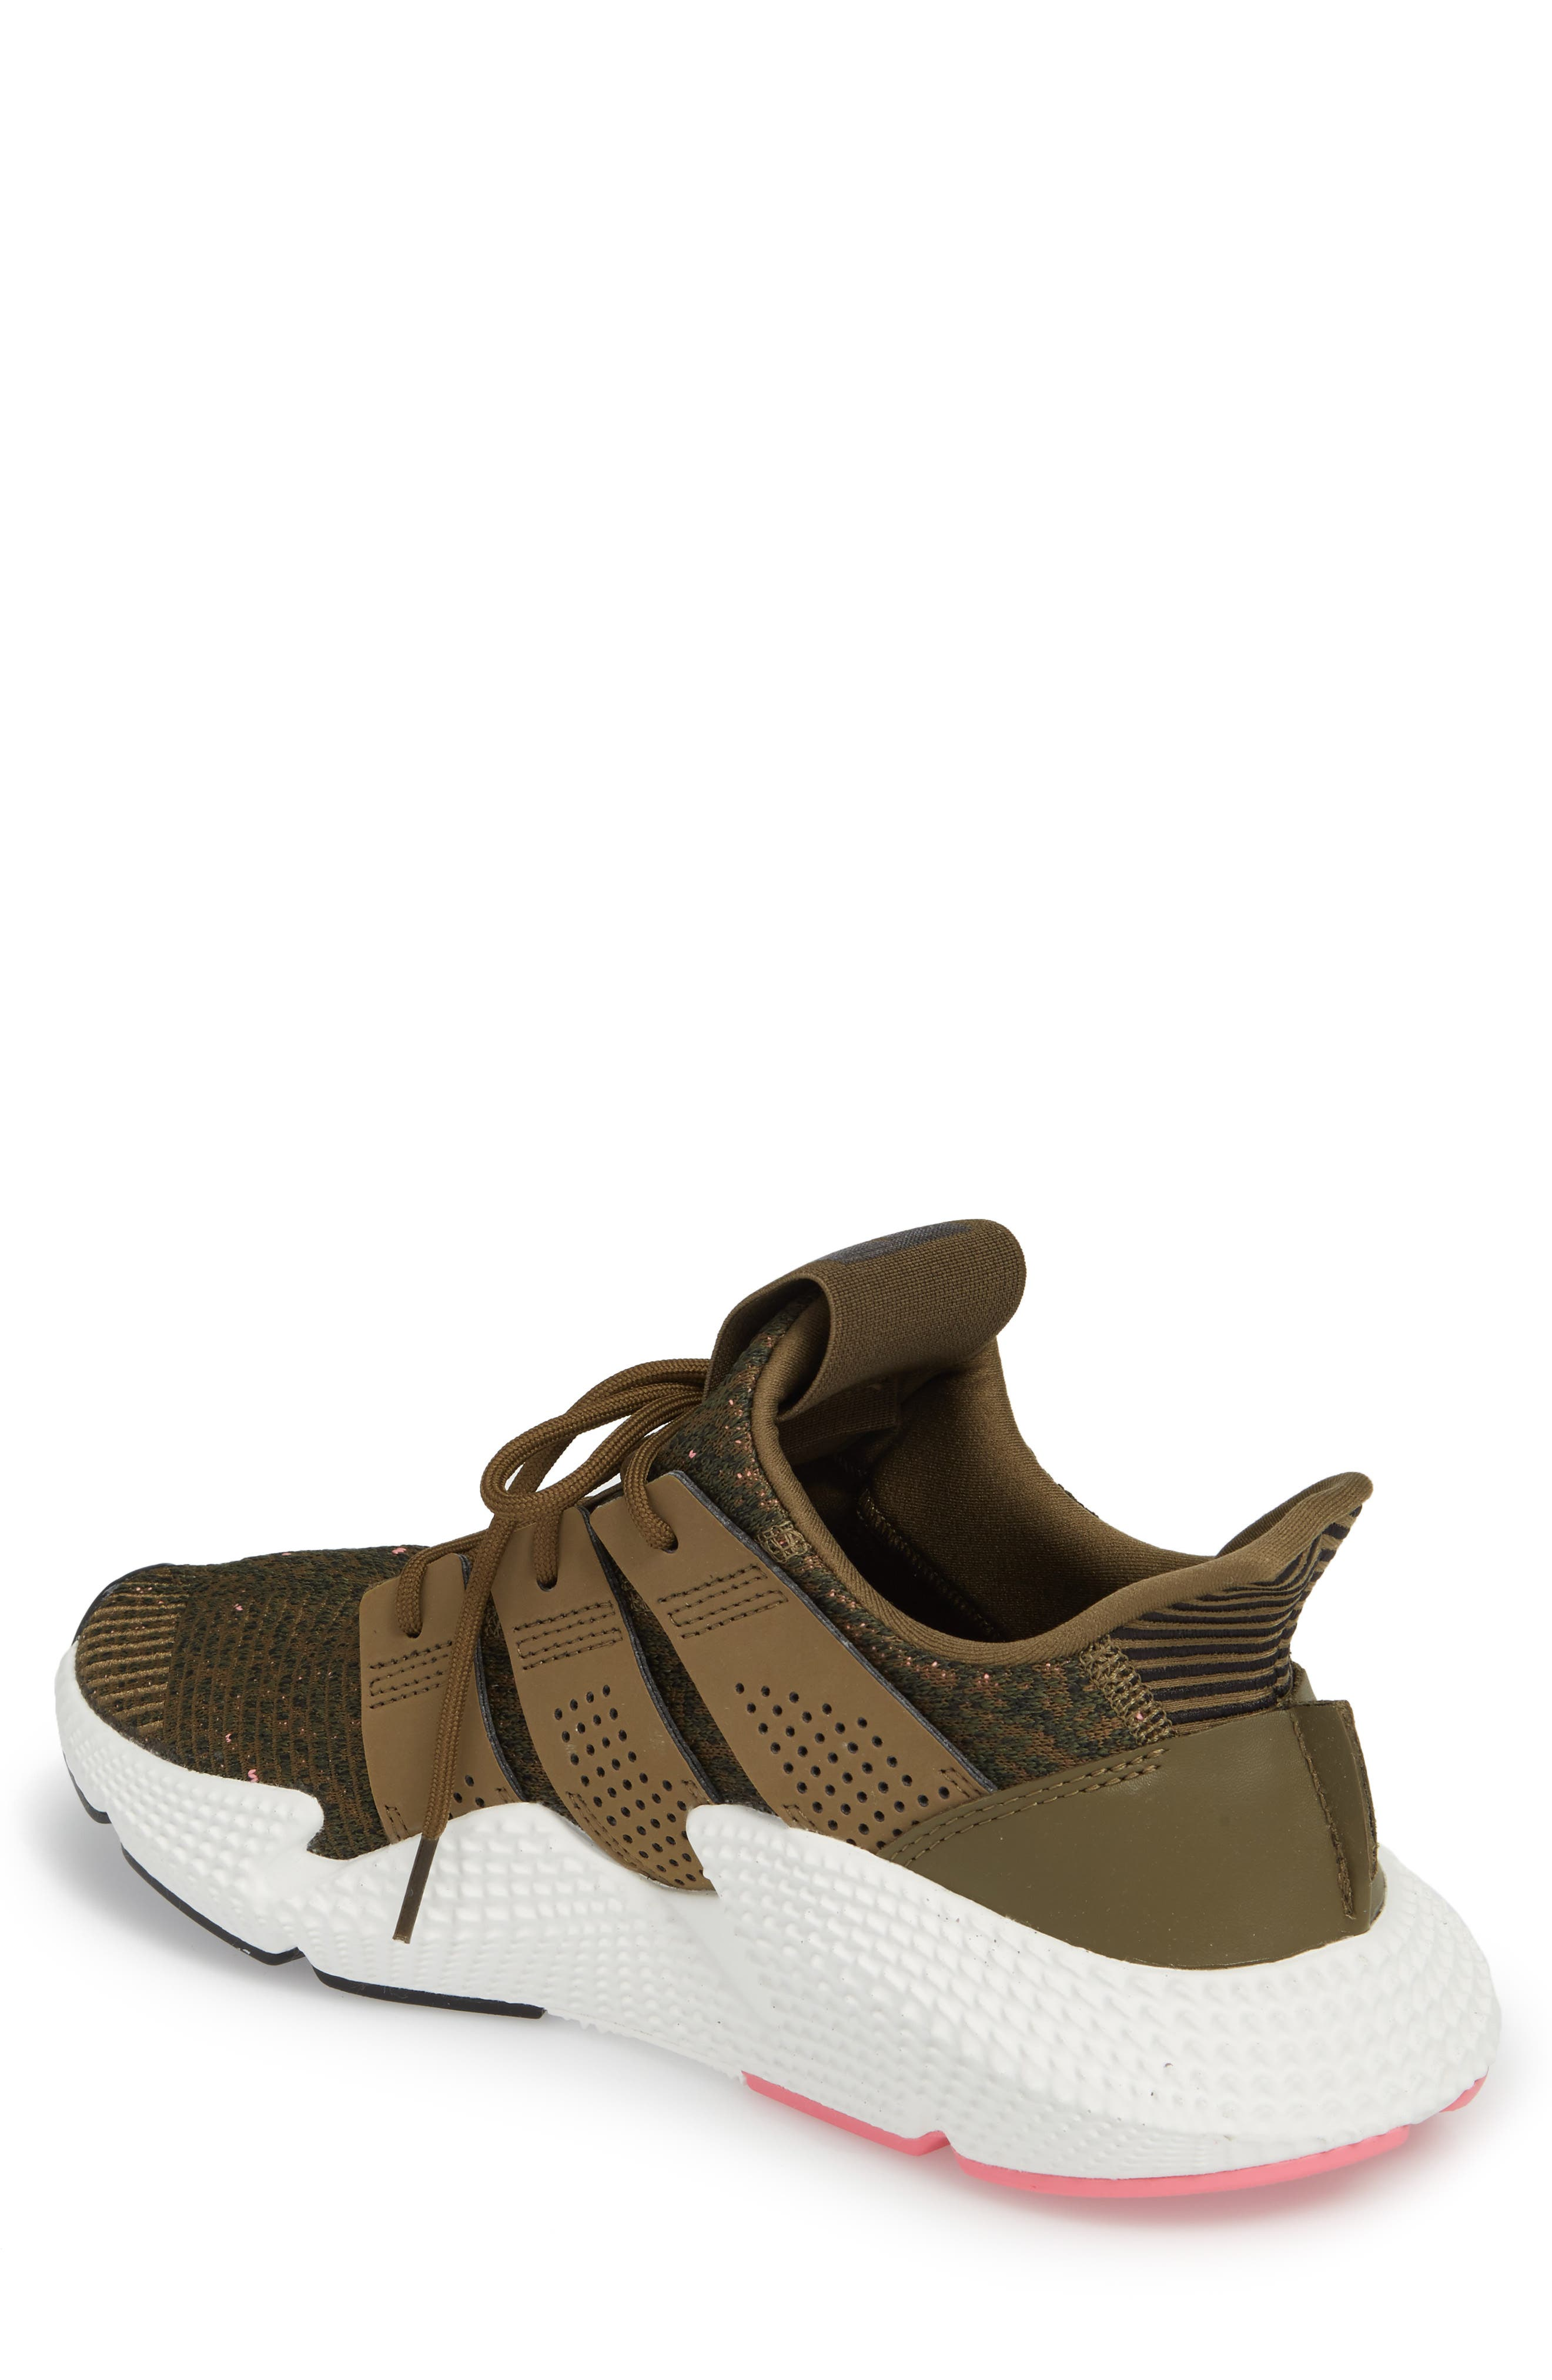 Prophere Sneaker,                             Alternate thumbnail 2, color,                             TRACE OLIVE/ CHALK PINK